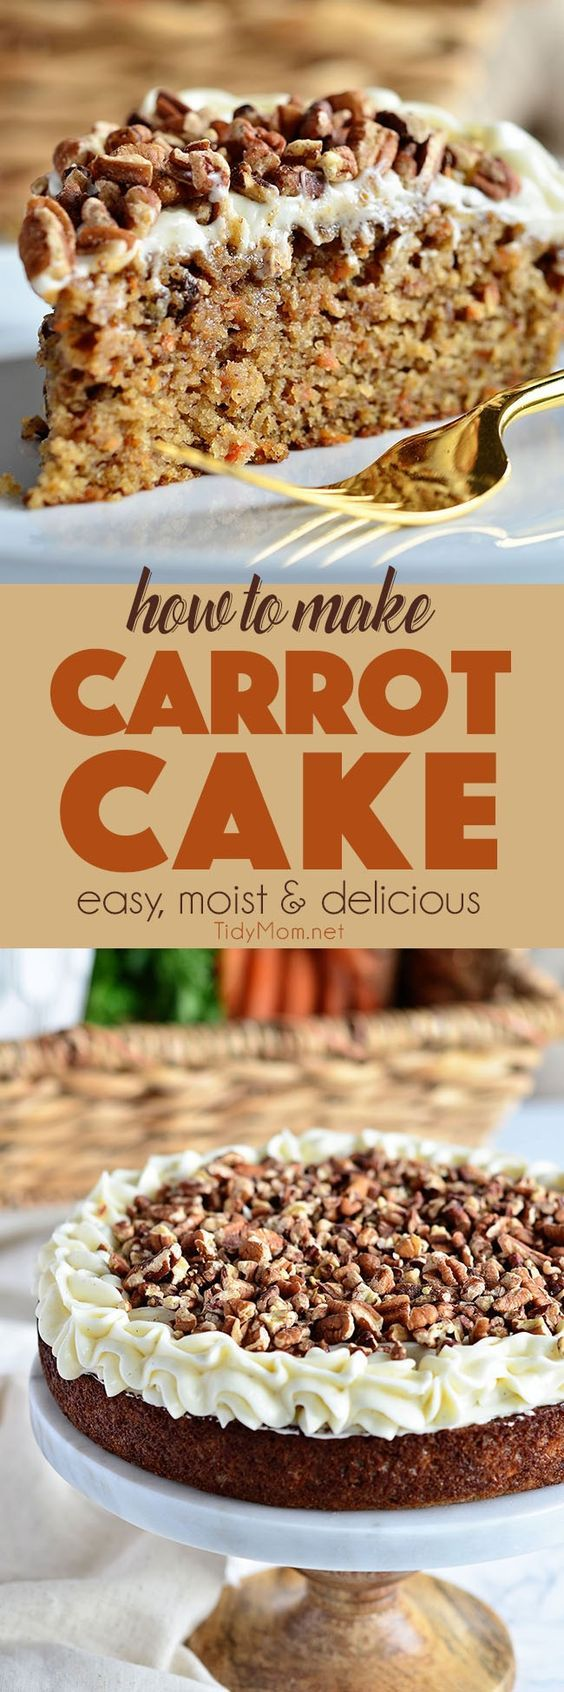 Tips on how to make the best homemade carrot cake. An incredibly moist carrot cake recipe with an ultra-creamy cream cheese frosting. Carrot Cake Recipe at TidyMom.net